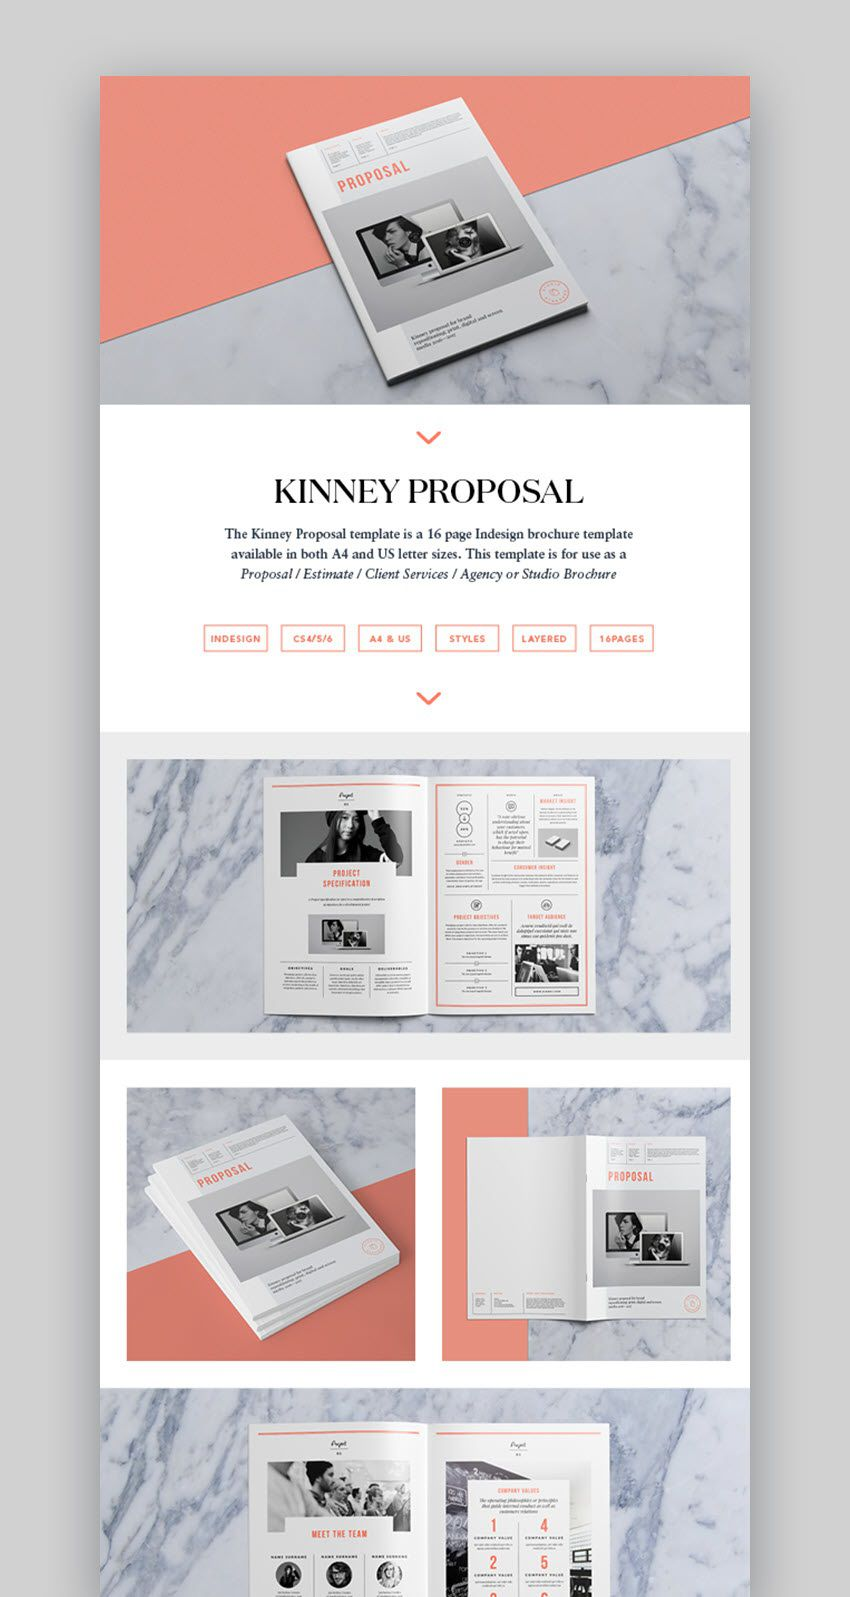 003 Remarkable Graphic Design Proposal Template Doc Free Highest Quality Full